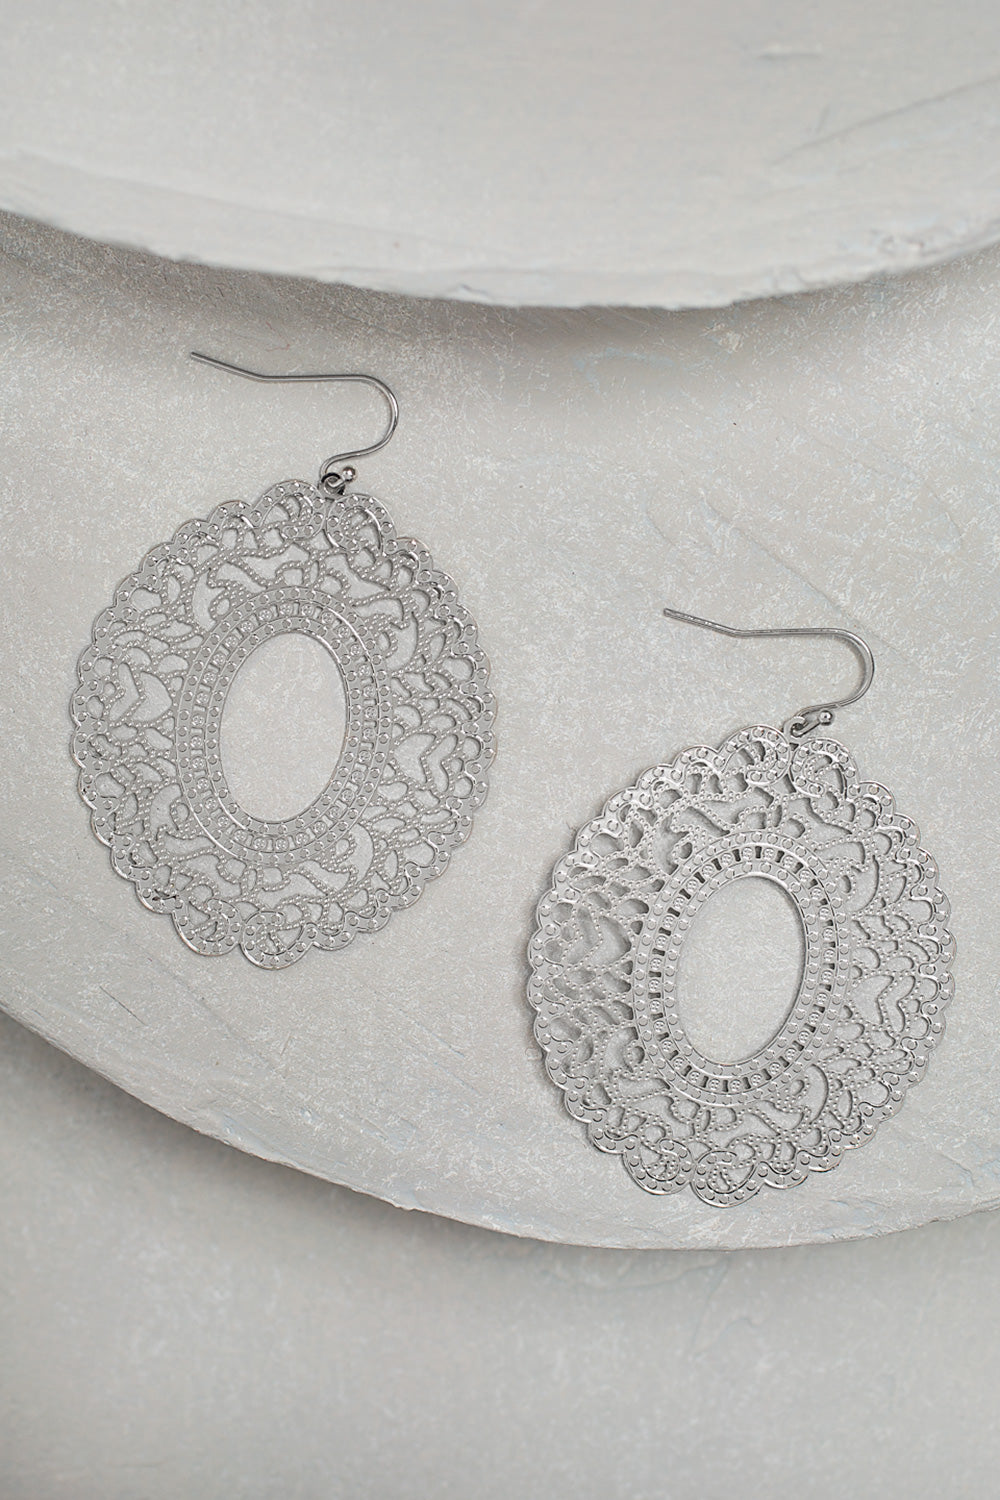 Type 2 Misty Fog Earrings